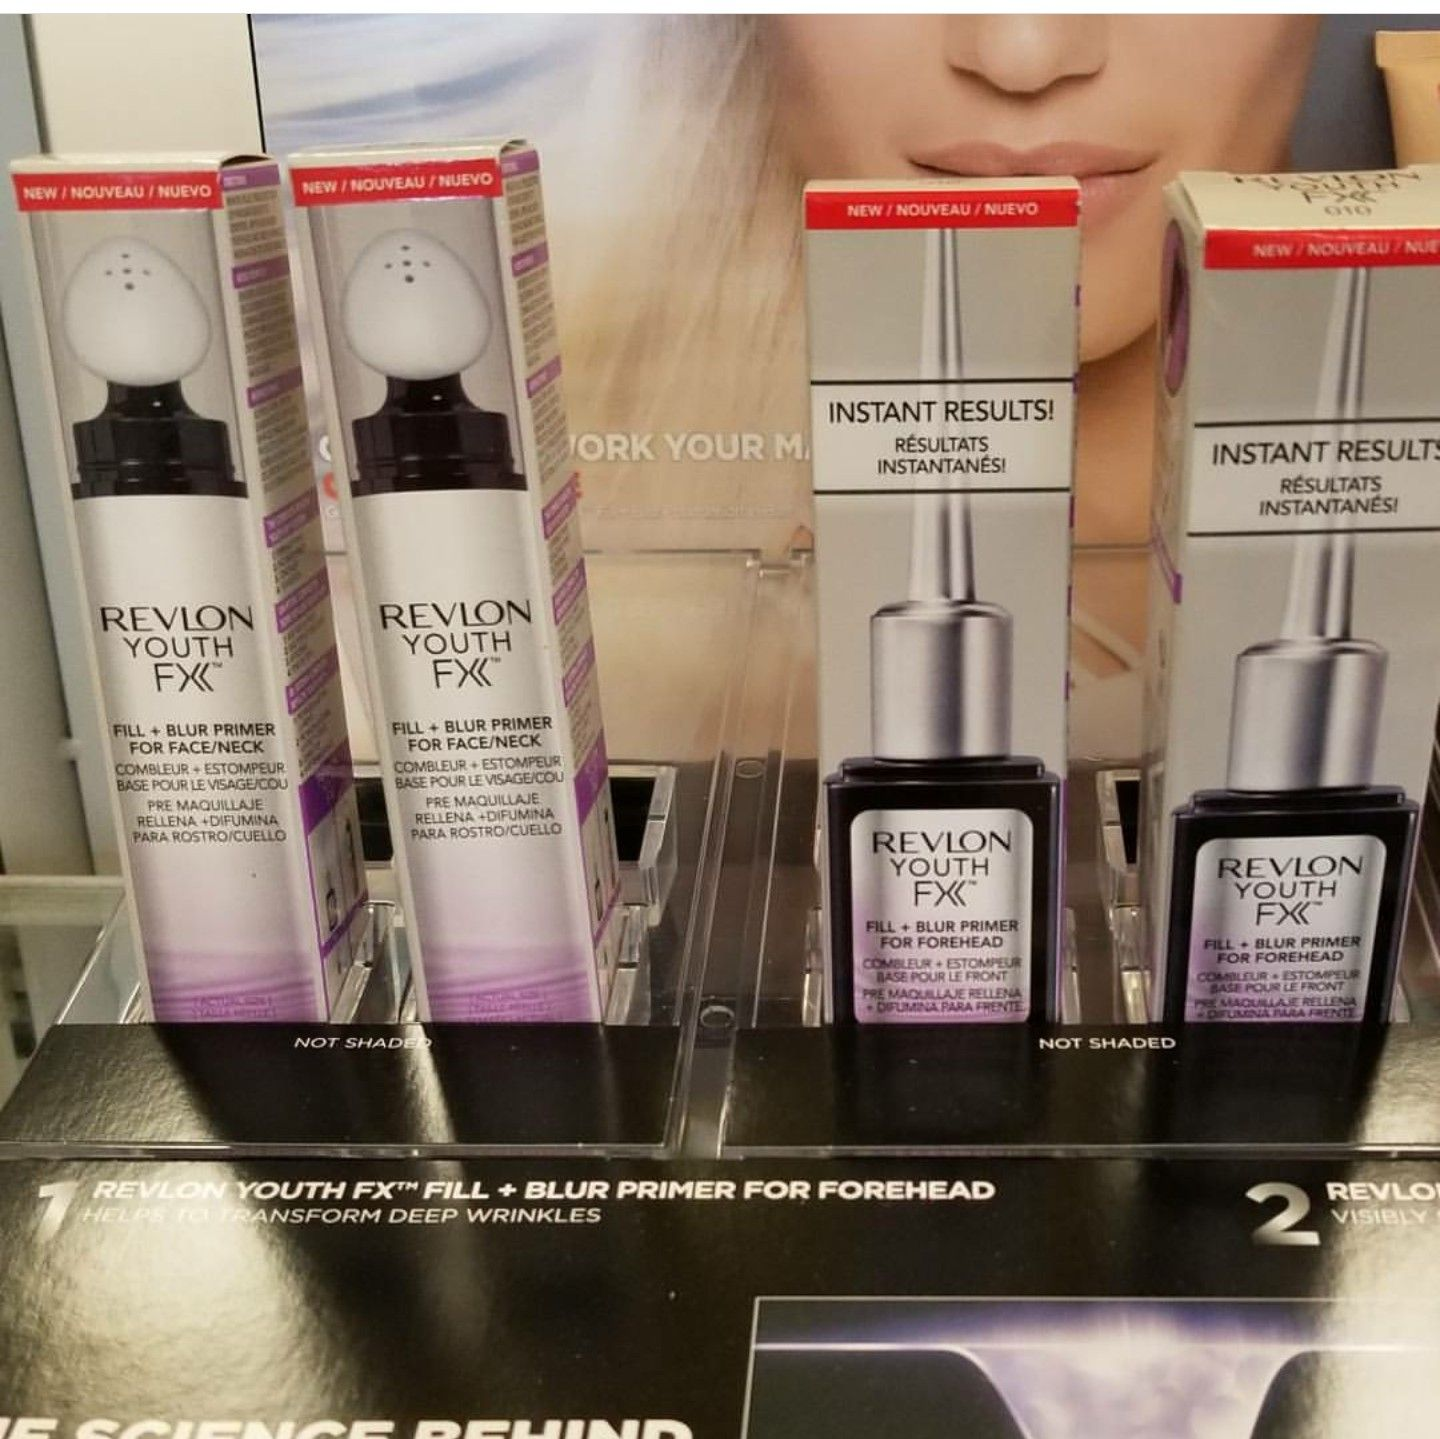 Revlon Youth FX Spotted at Rite Aid (With images) Revlon